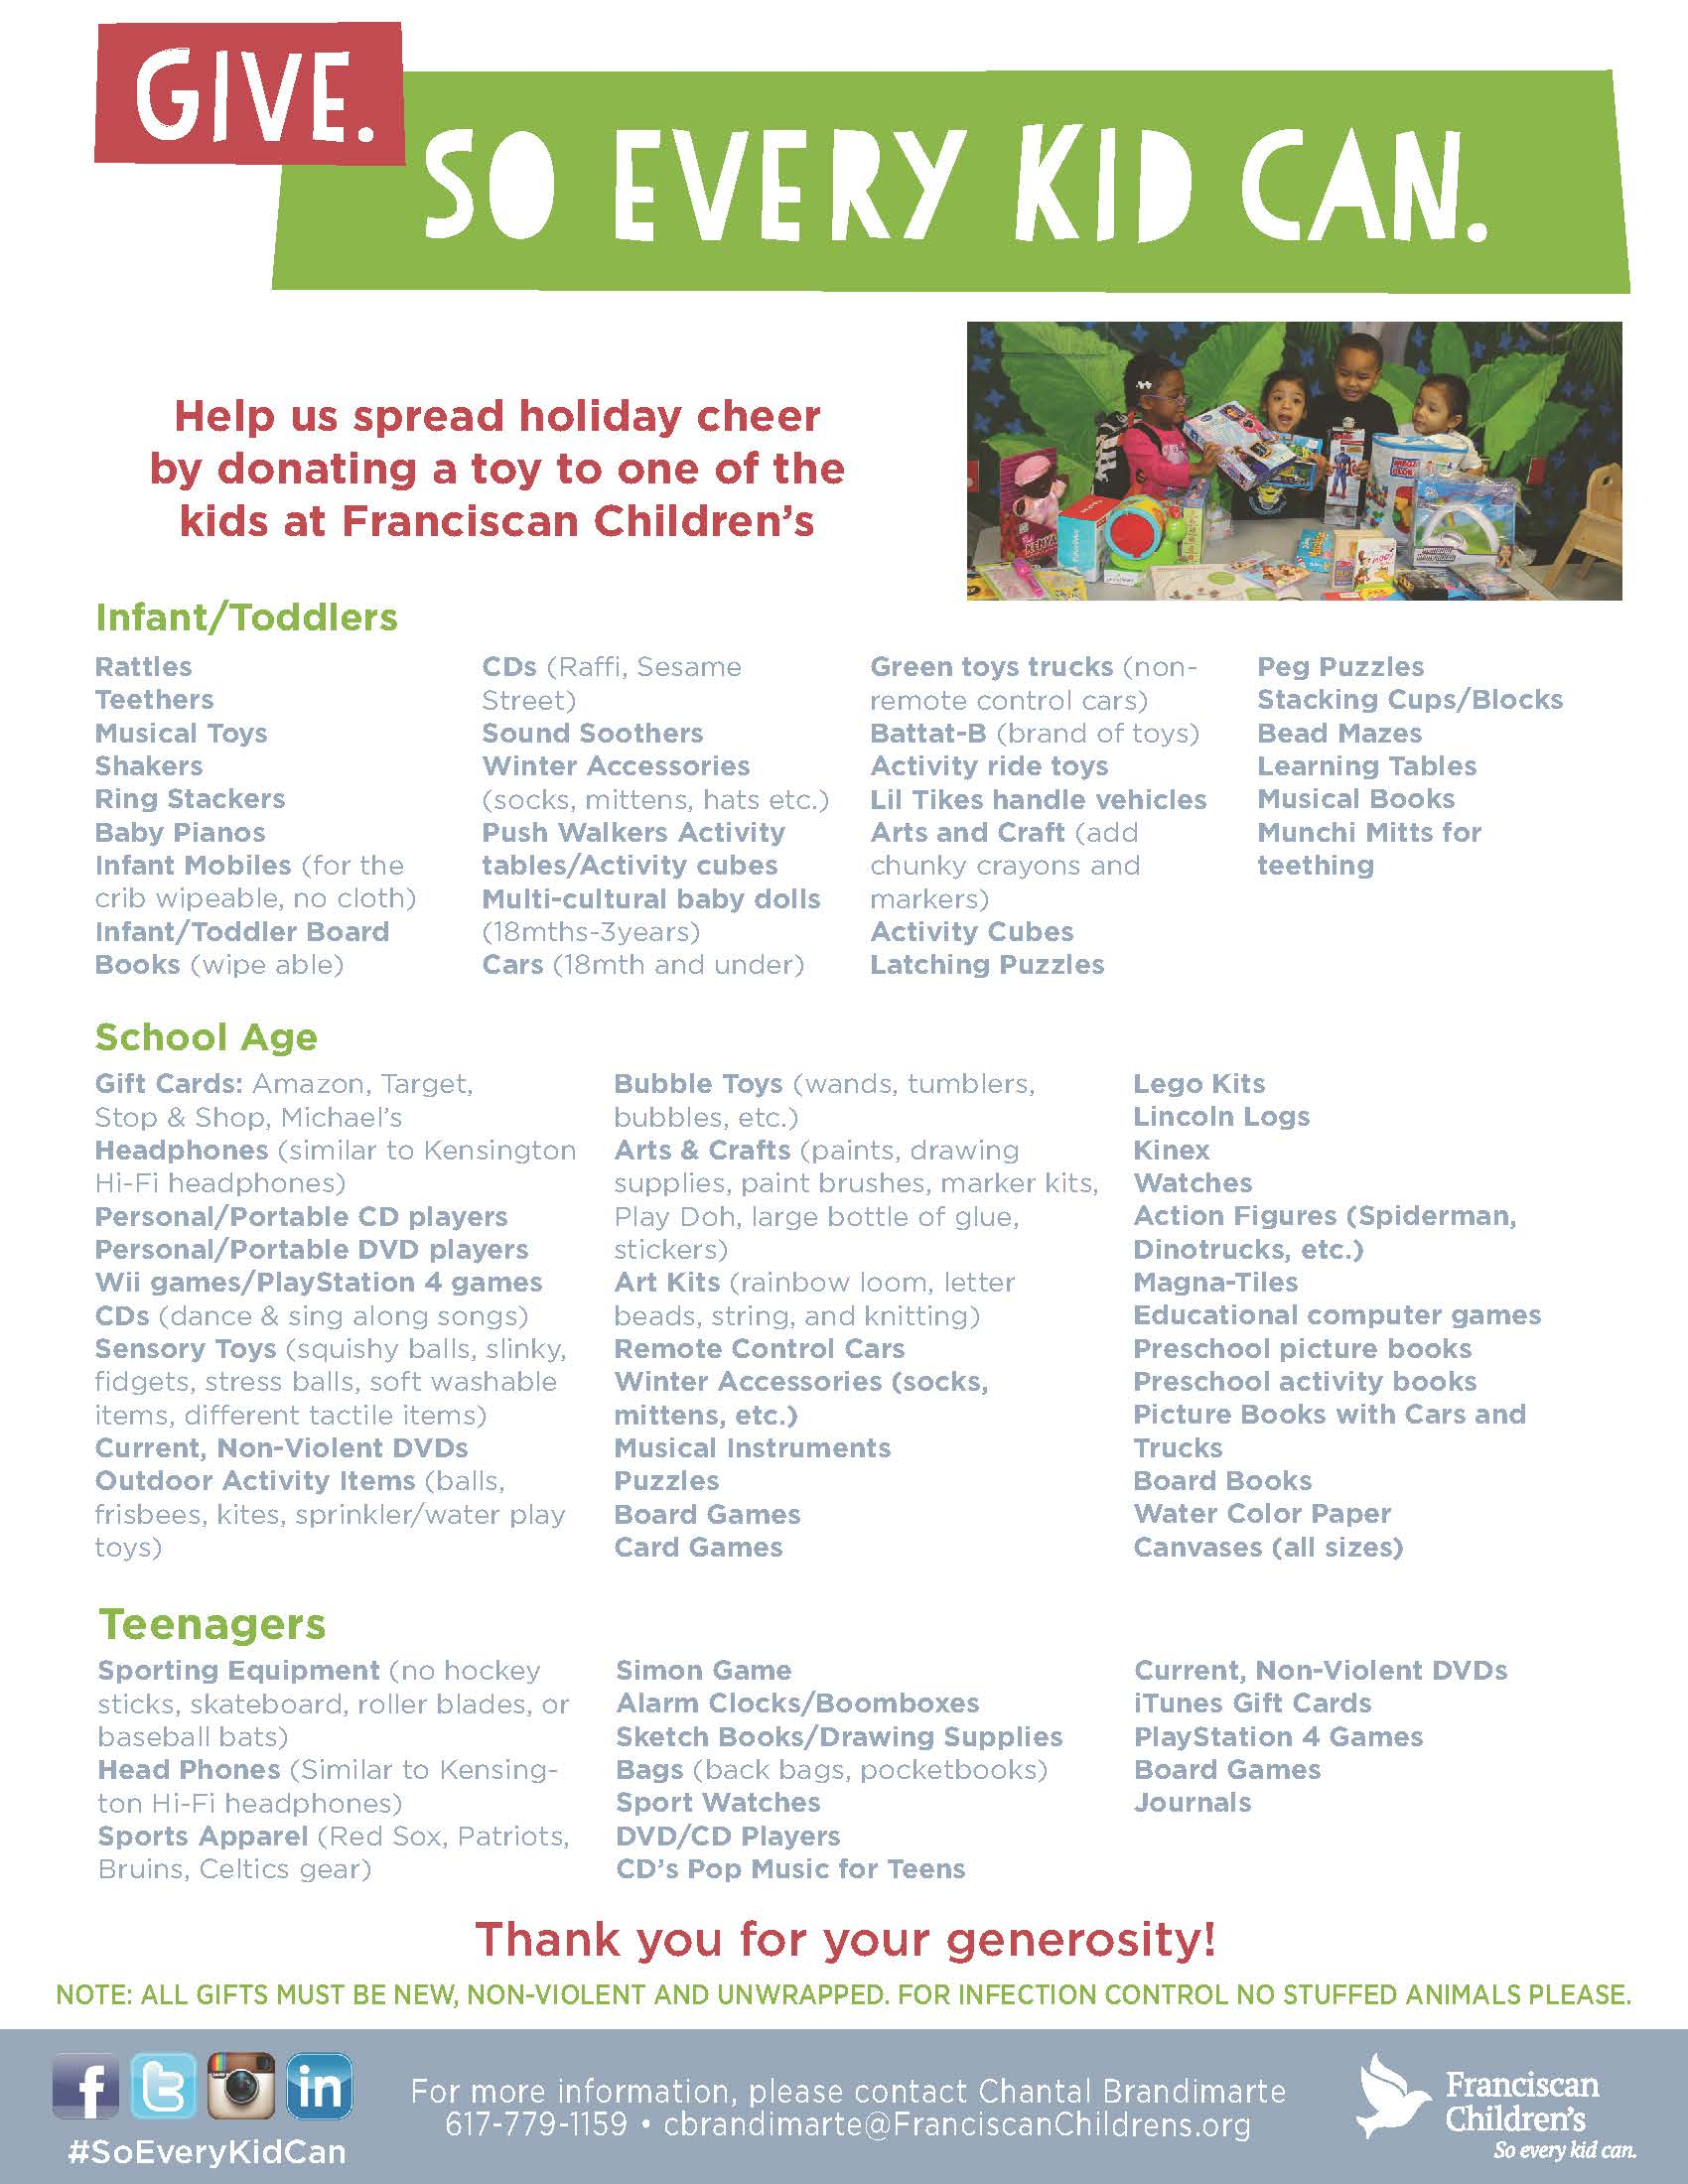 franciscan-childrens-2016-holiday-toy-drive-flyer-1